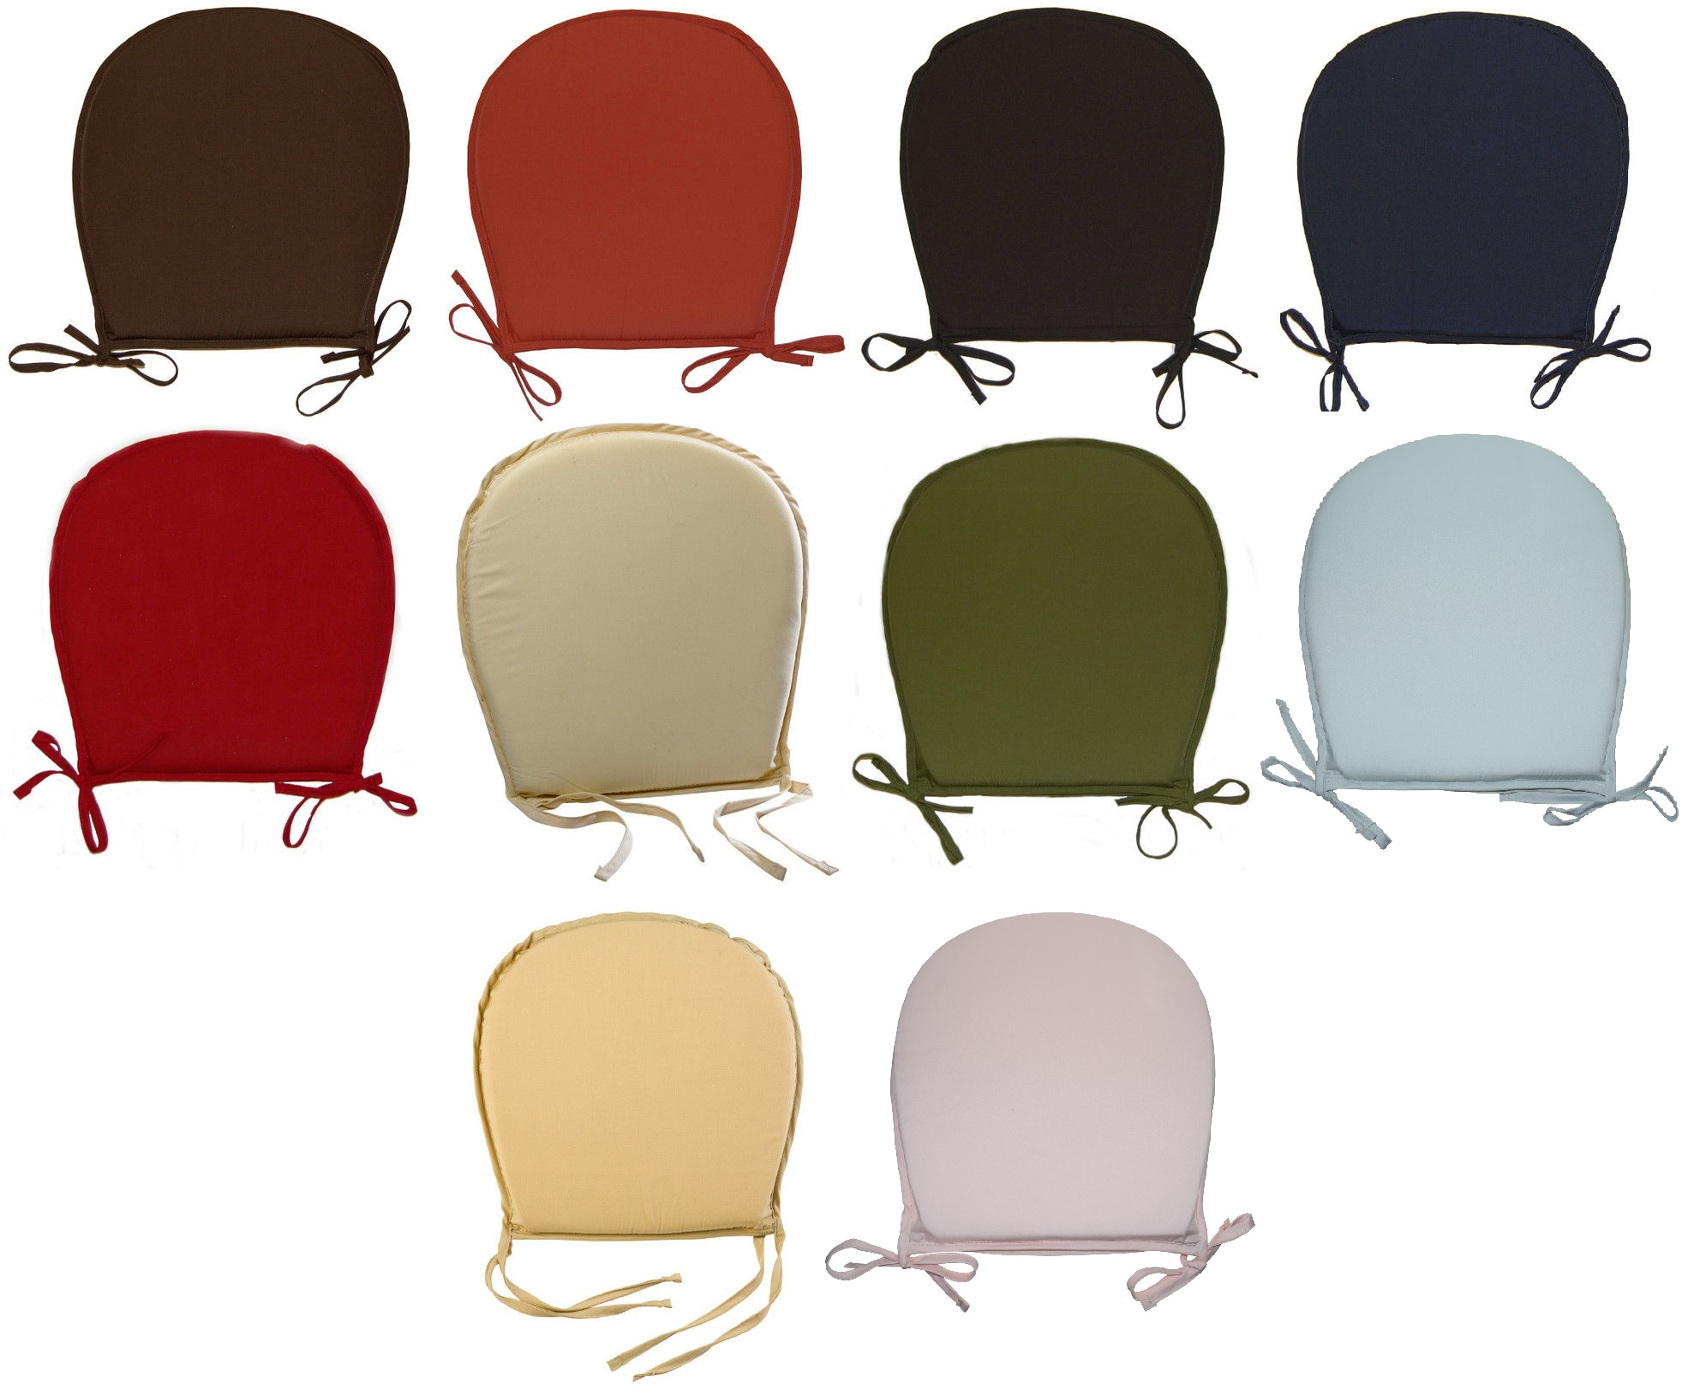 round chair cushions 14 inch swing with stand kuwait kitchen seat pad garden furniture dining room